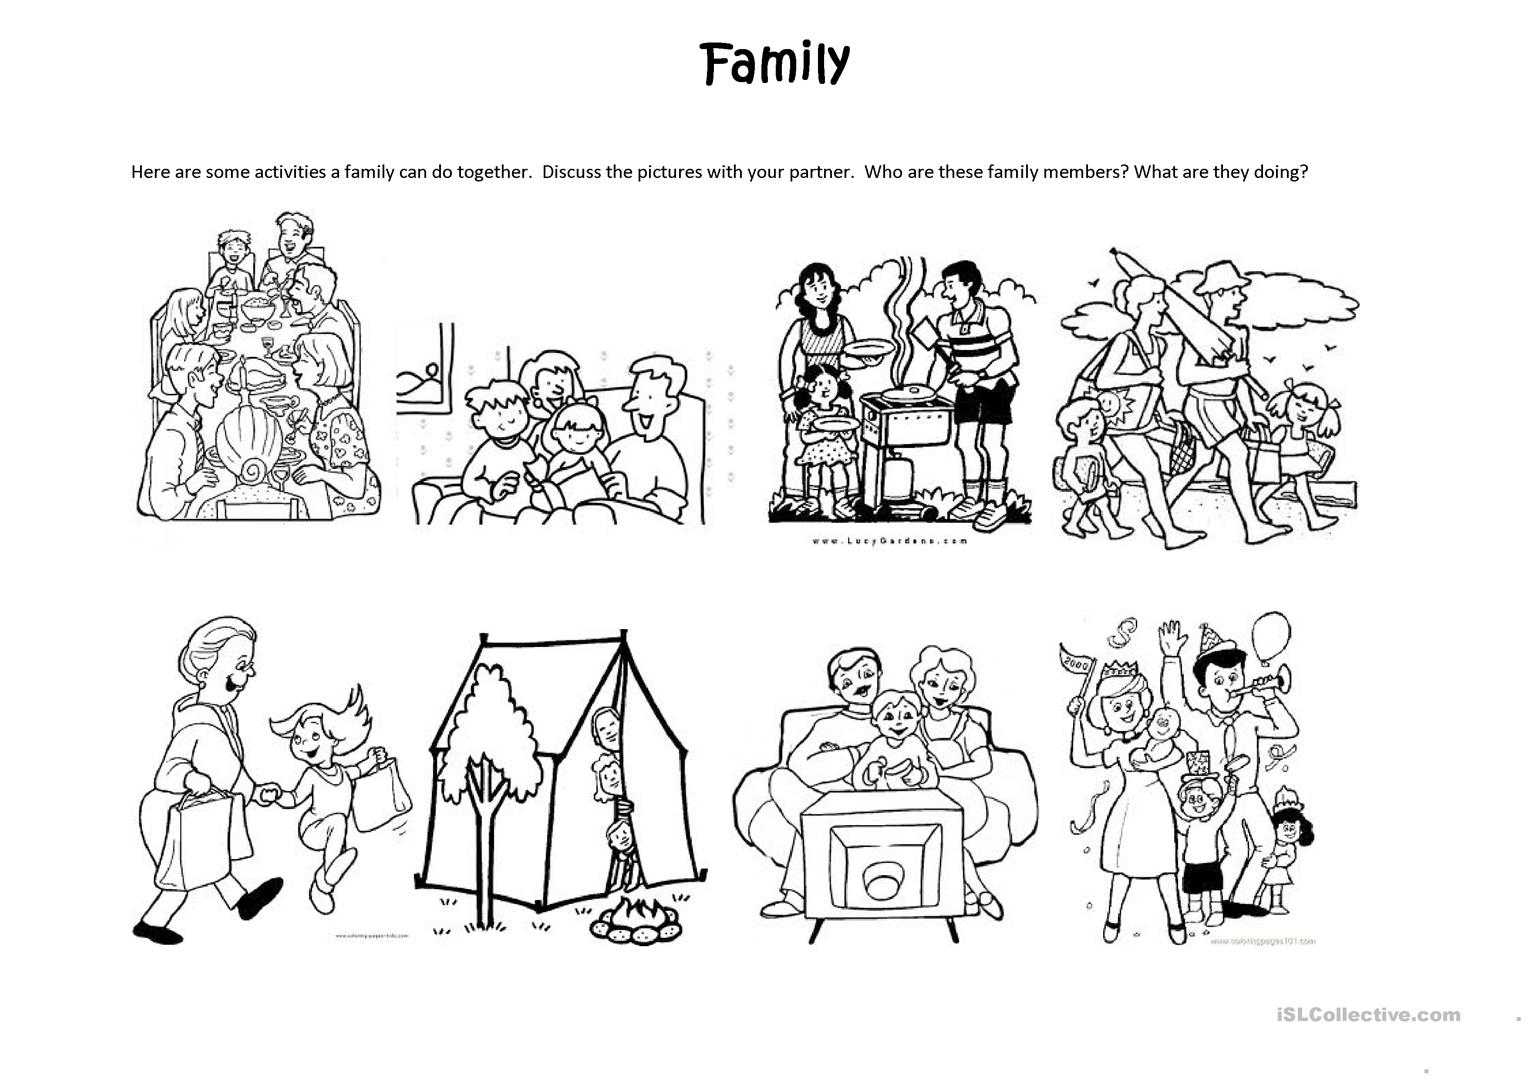 Family Activities Worksheet